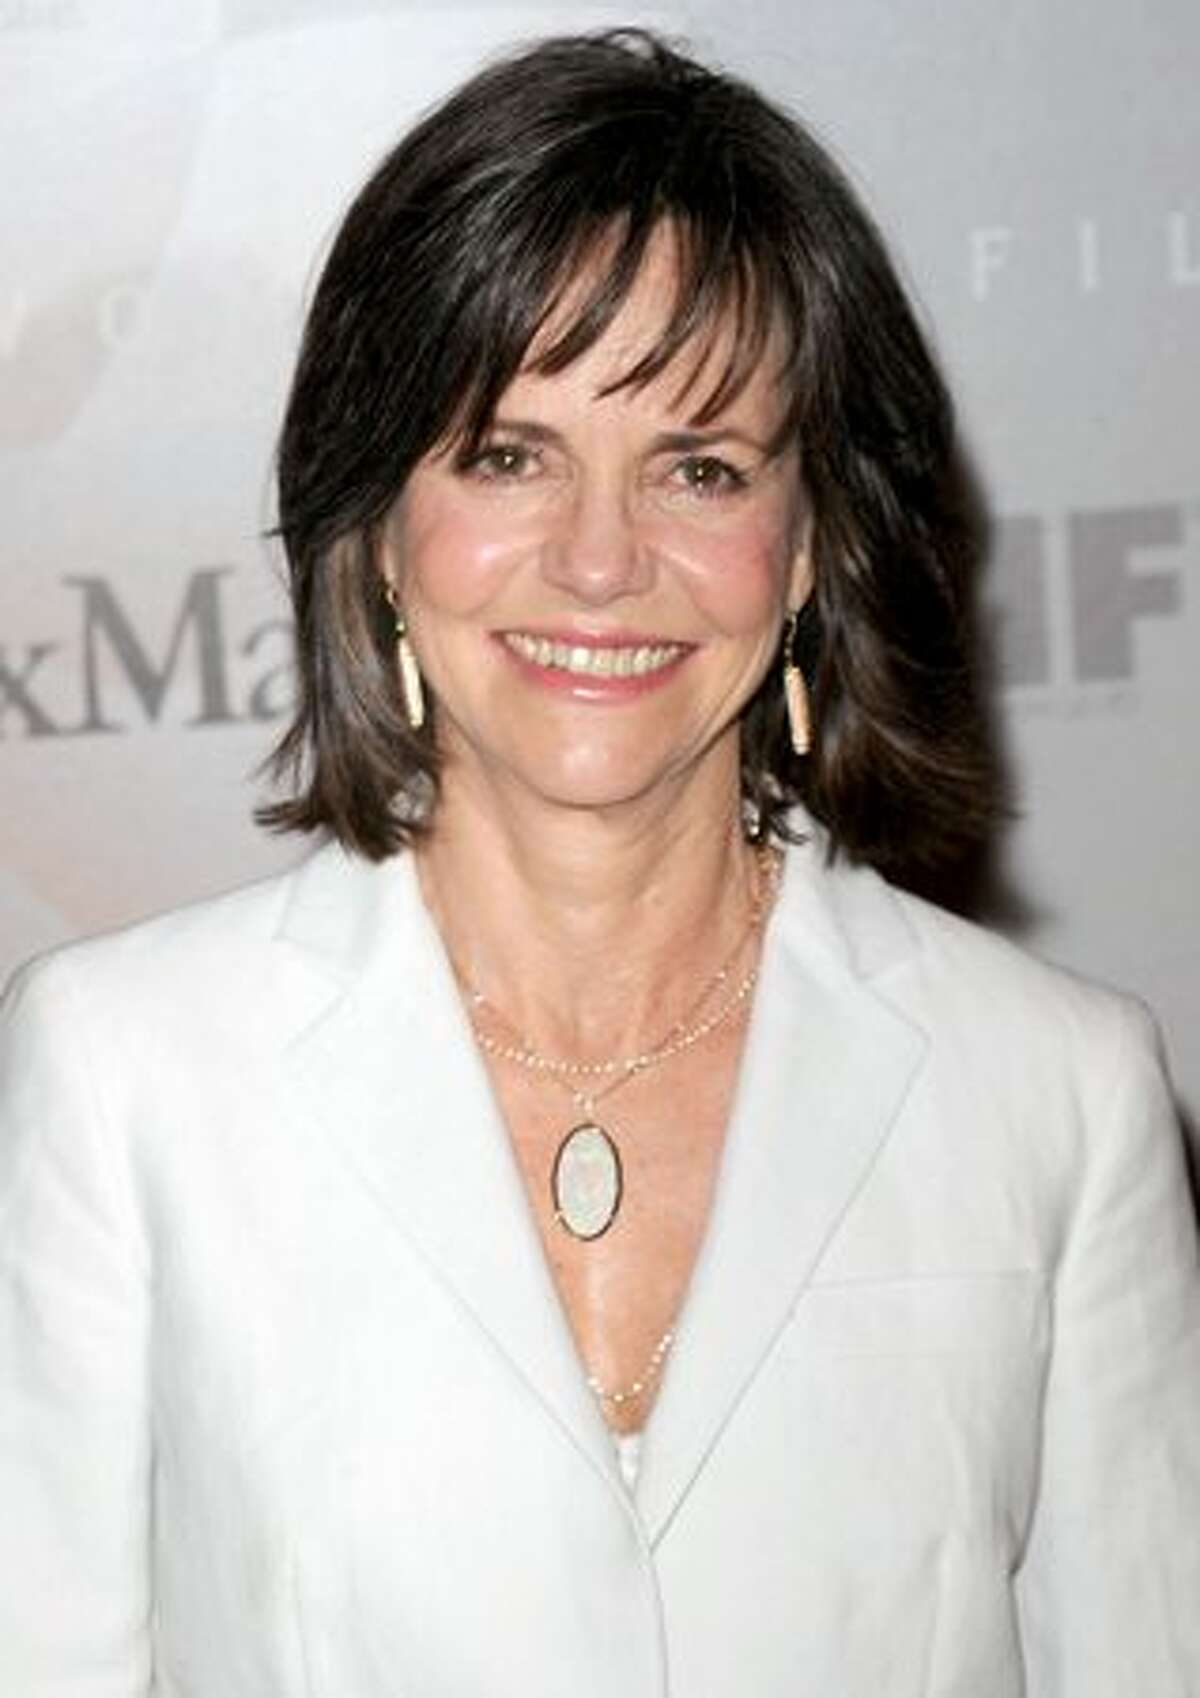 Sally Field, June 1, 2010, age 63.